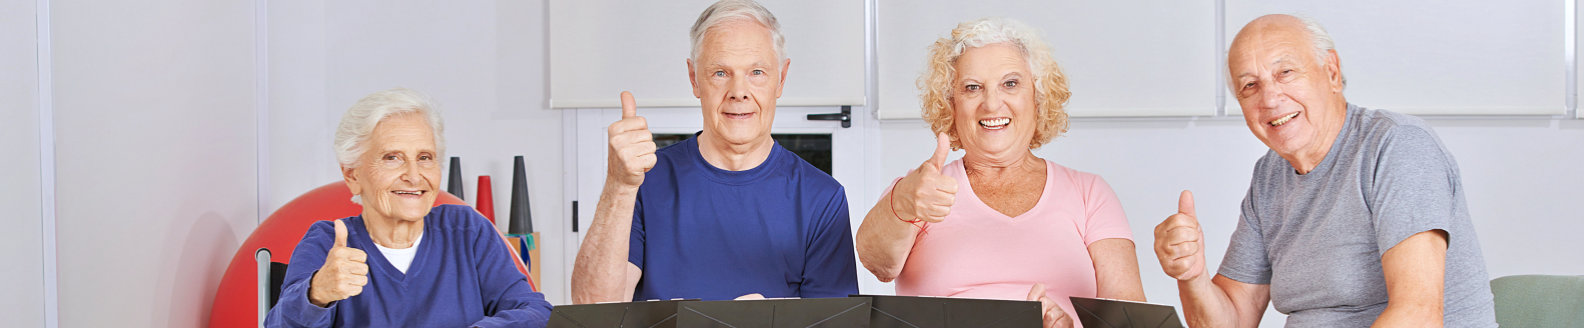 elderly people showing thumbs up